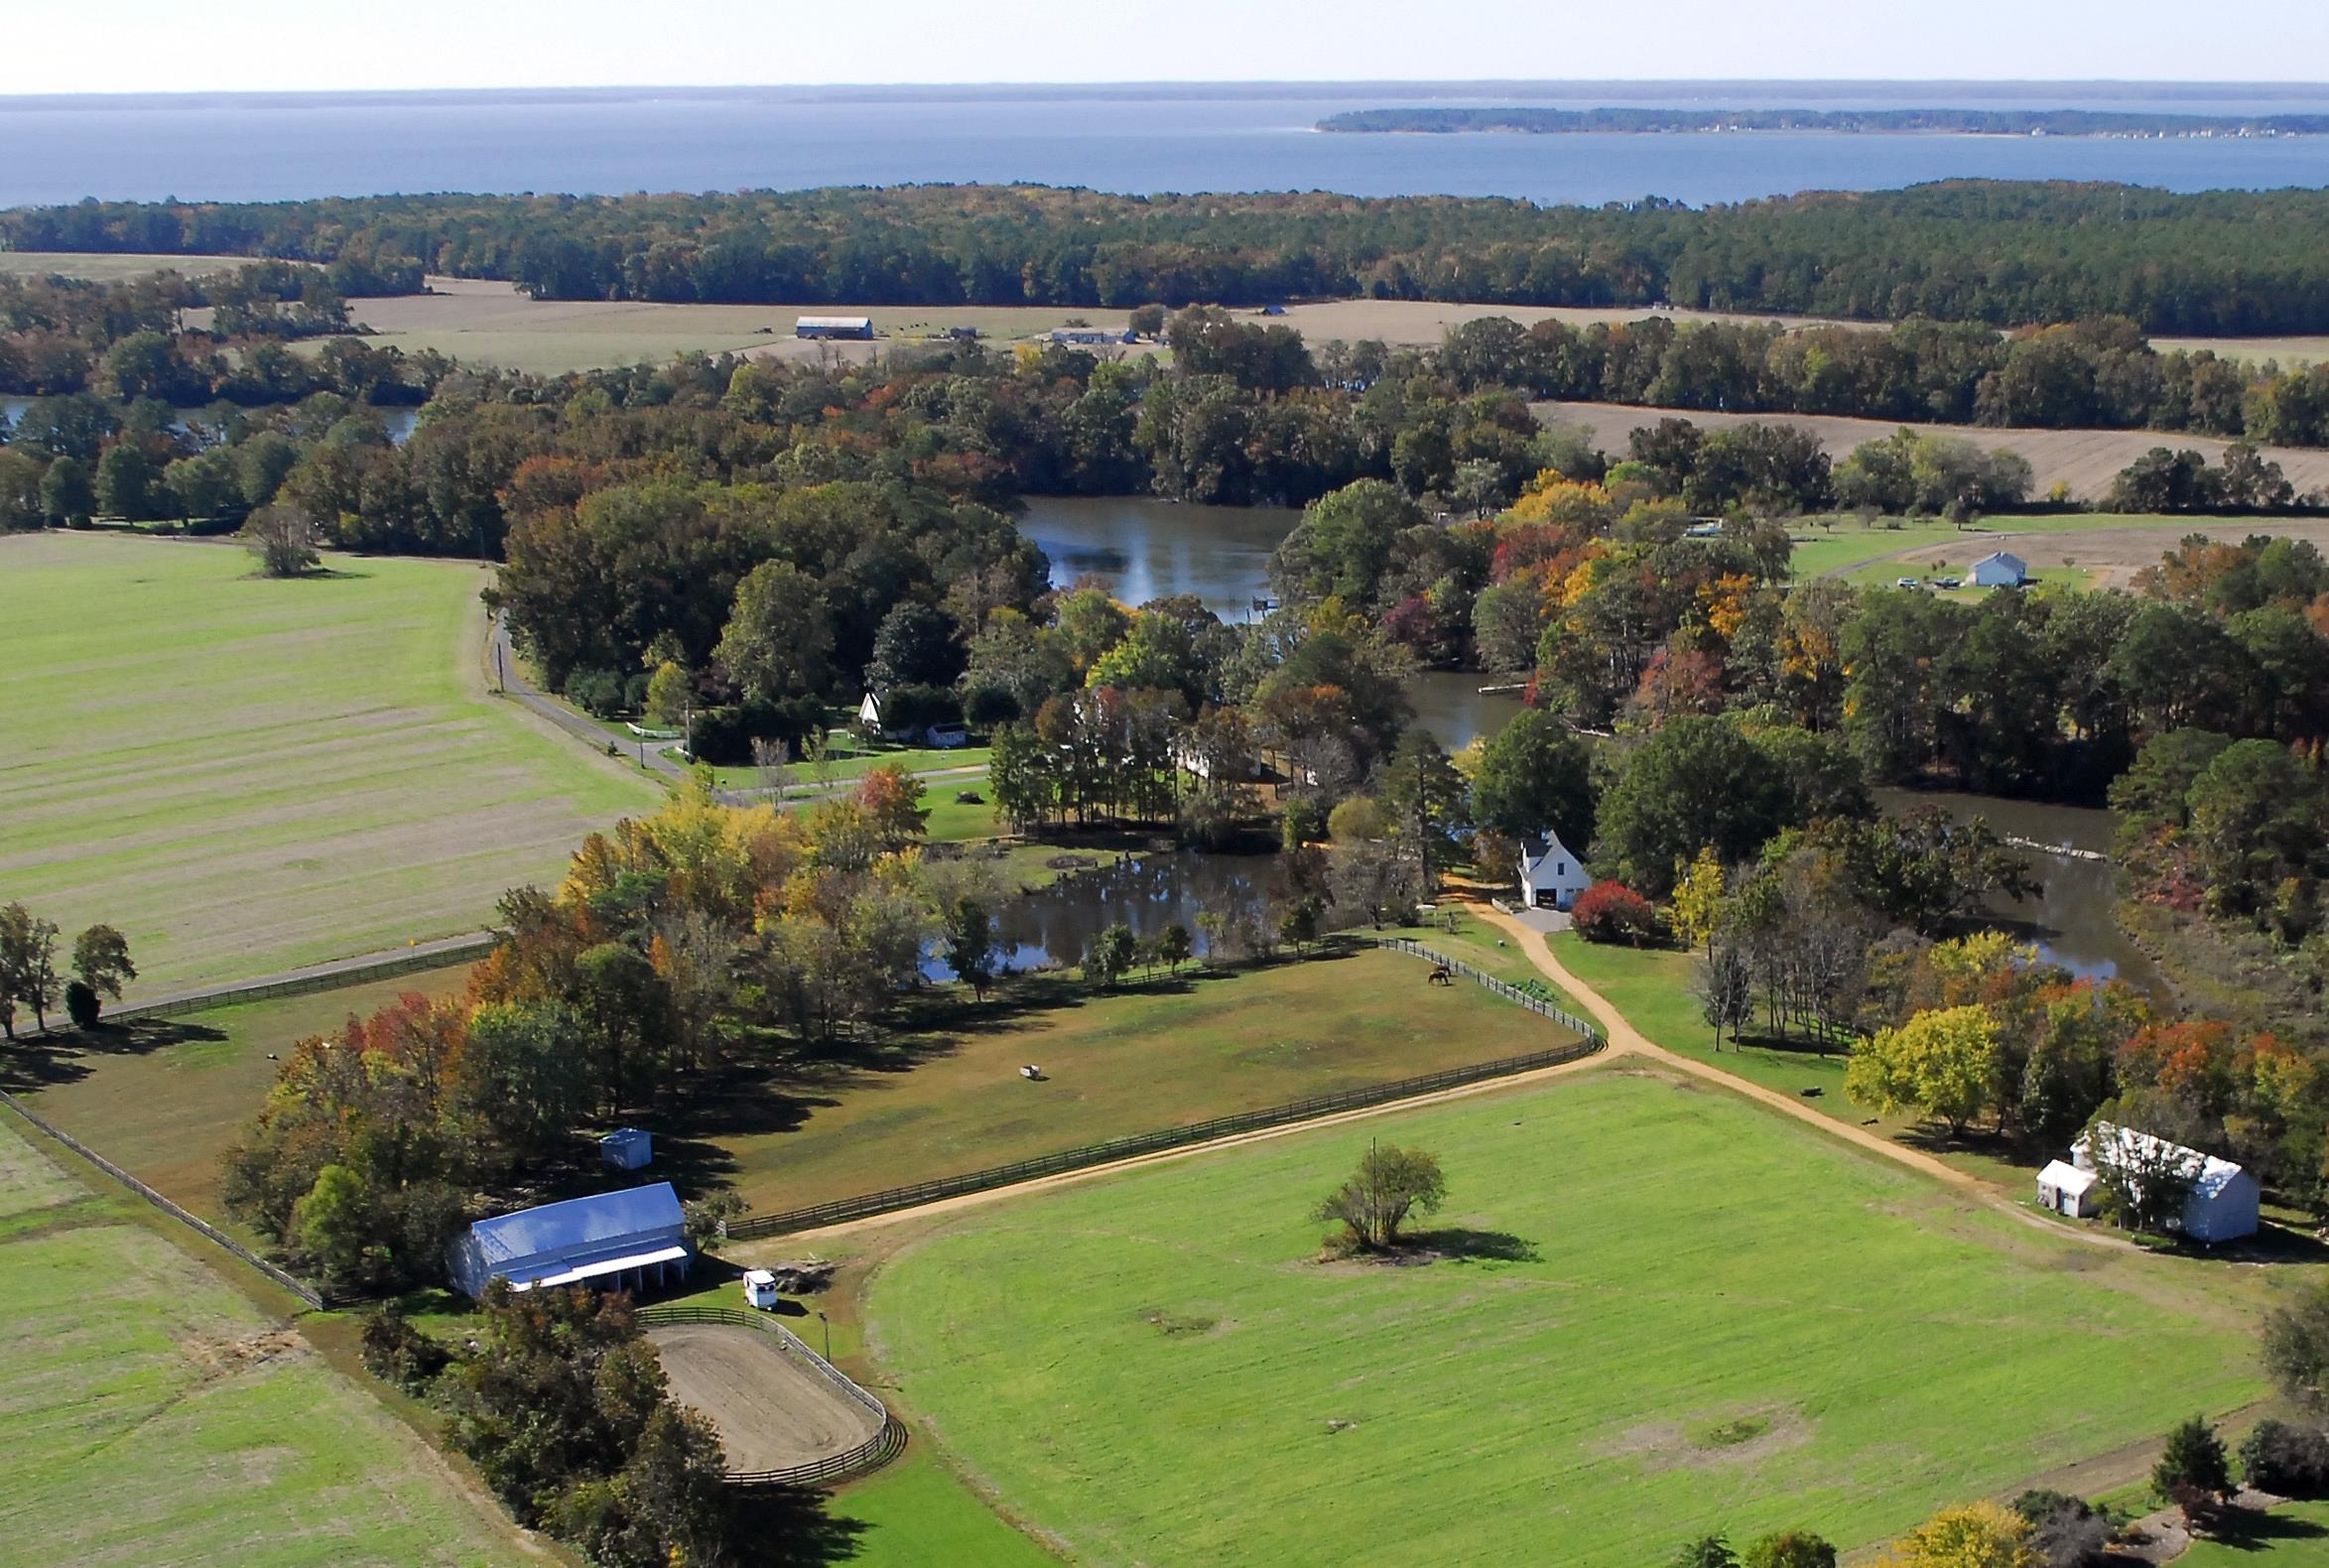 Fabulous horse farm property in Saint inigoes, in Saint Mary's County MD!  This is a waterfront farm featuring a custom built Cape Cod style home!  This is a 20 acre parcel of cleared, flat land, with a horse barn, tobacco barn with stripping shed, pier and more!  Call Marie Lally at 301-748-8698 for additional information about this Southern Maryland Horse Property for Sale.